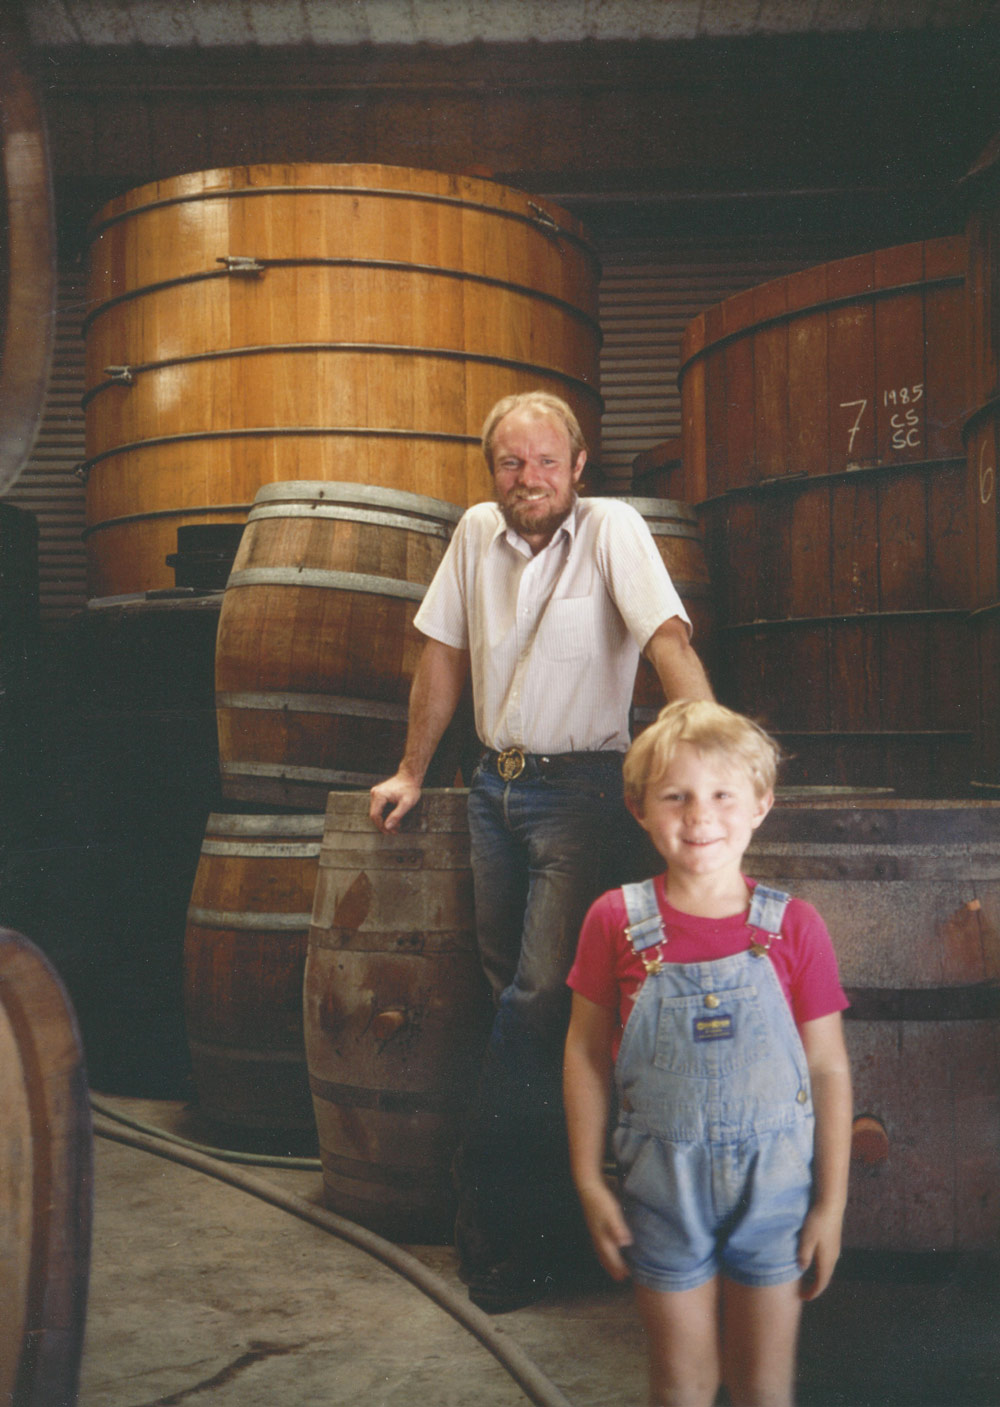 Joel Peterson and 7-year-old Morgan Twain-Peterson in Ravenswood Winery, in the 1980s